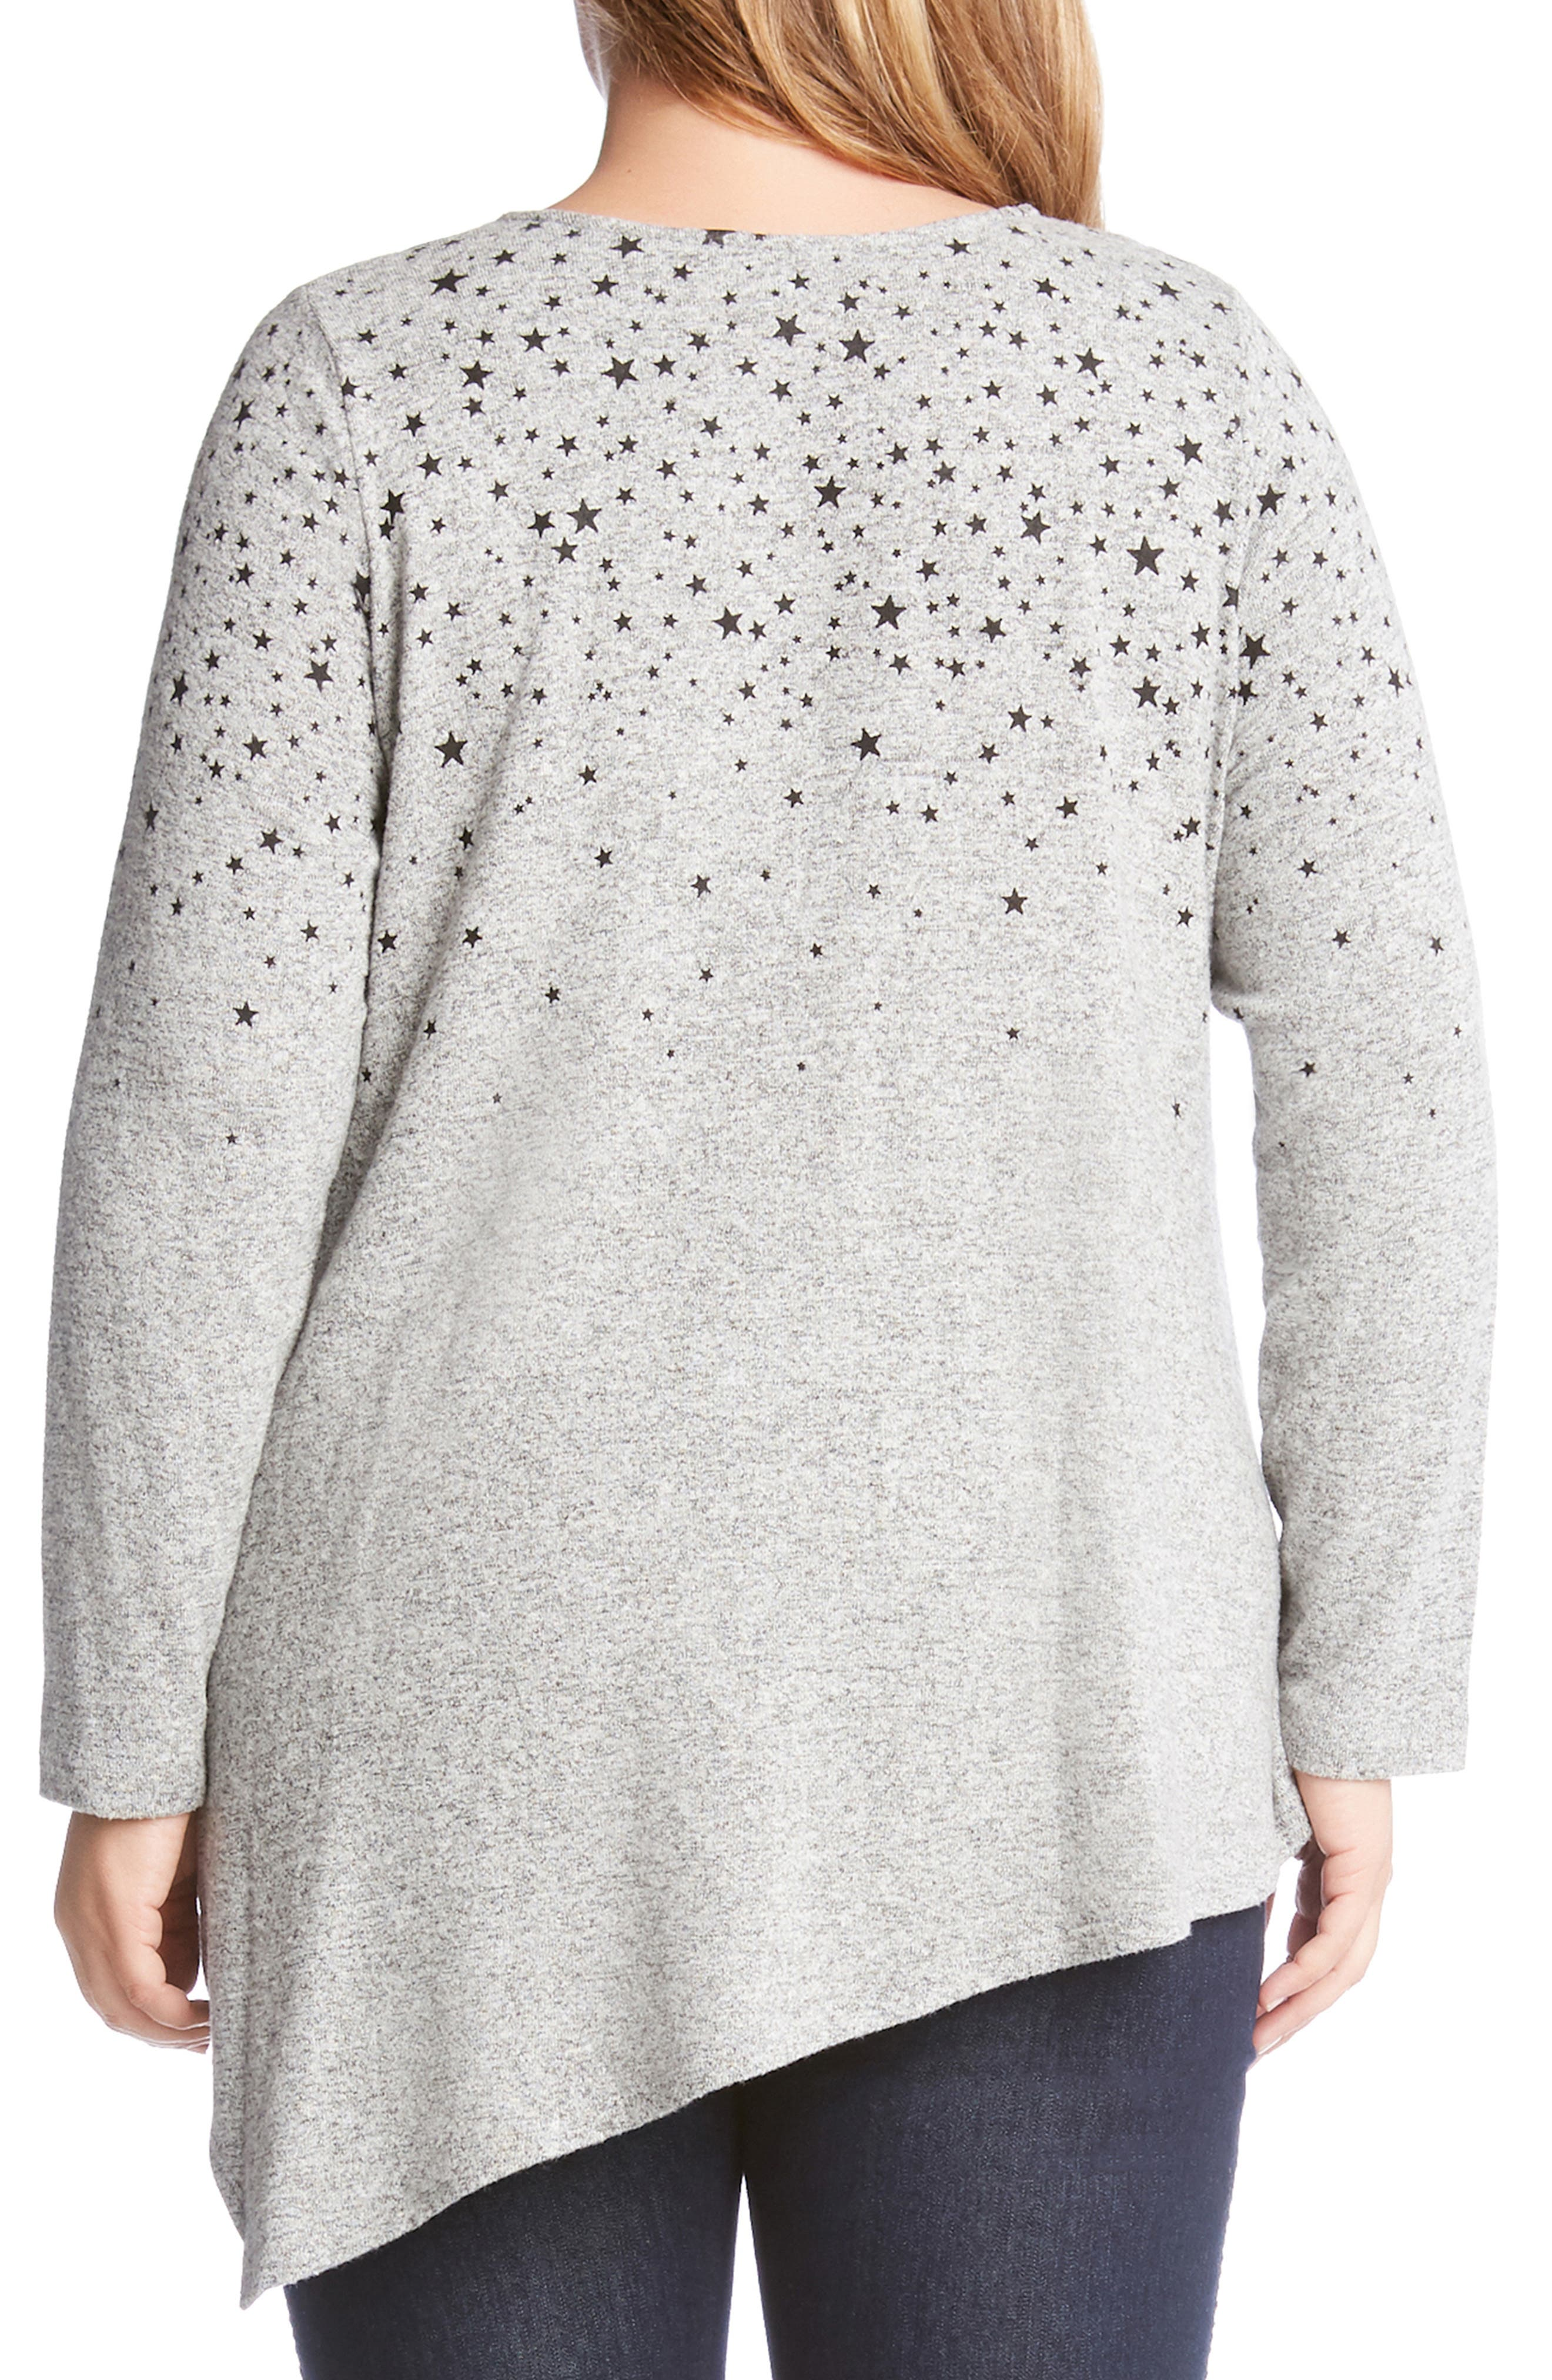 KAREN KANE,                             Asymmetrical Star Print Sweater,                             Alternate thumbnail 2, color,                             020